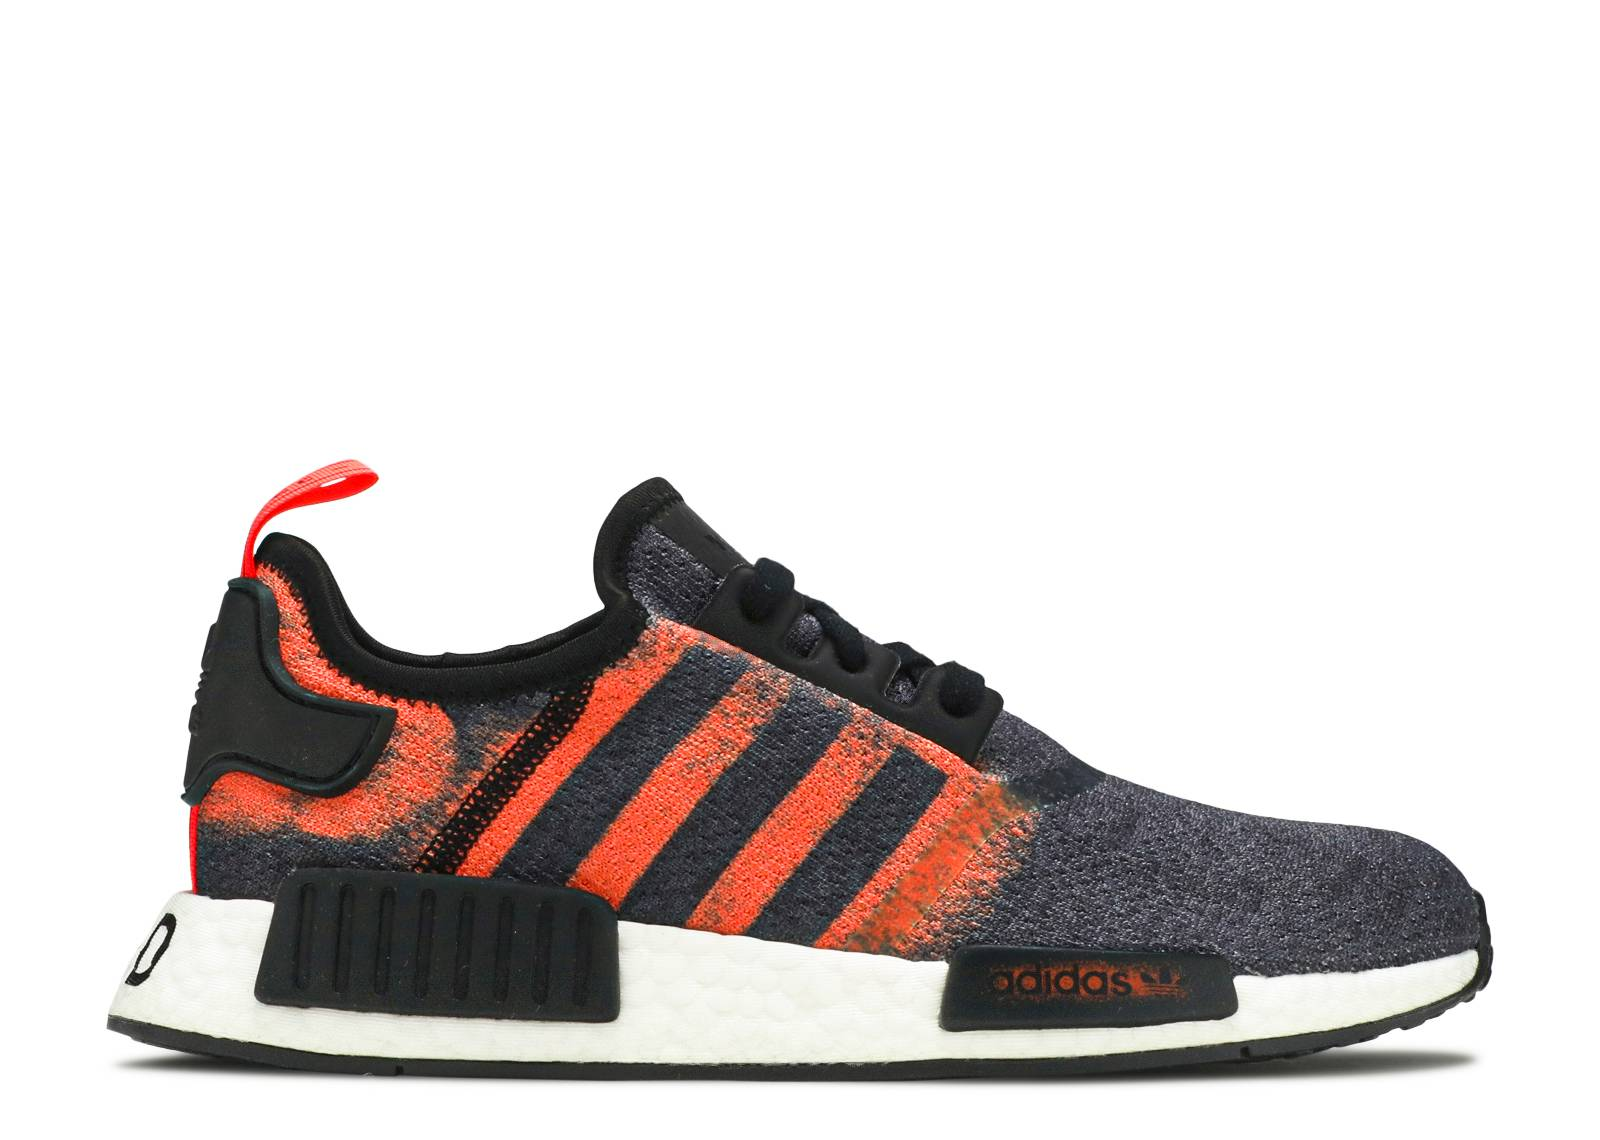 4ae5ccae5 Adidas NMD - adidas Originals Men s   Women s Shoes